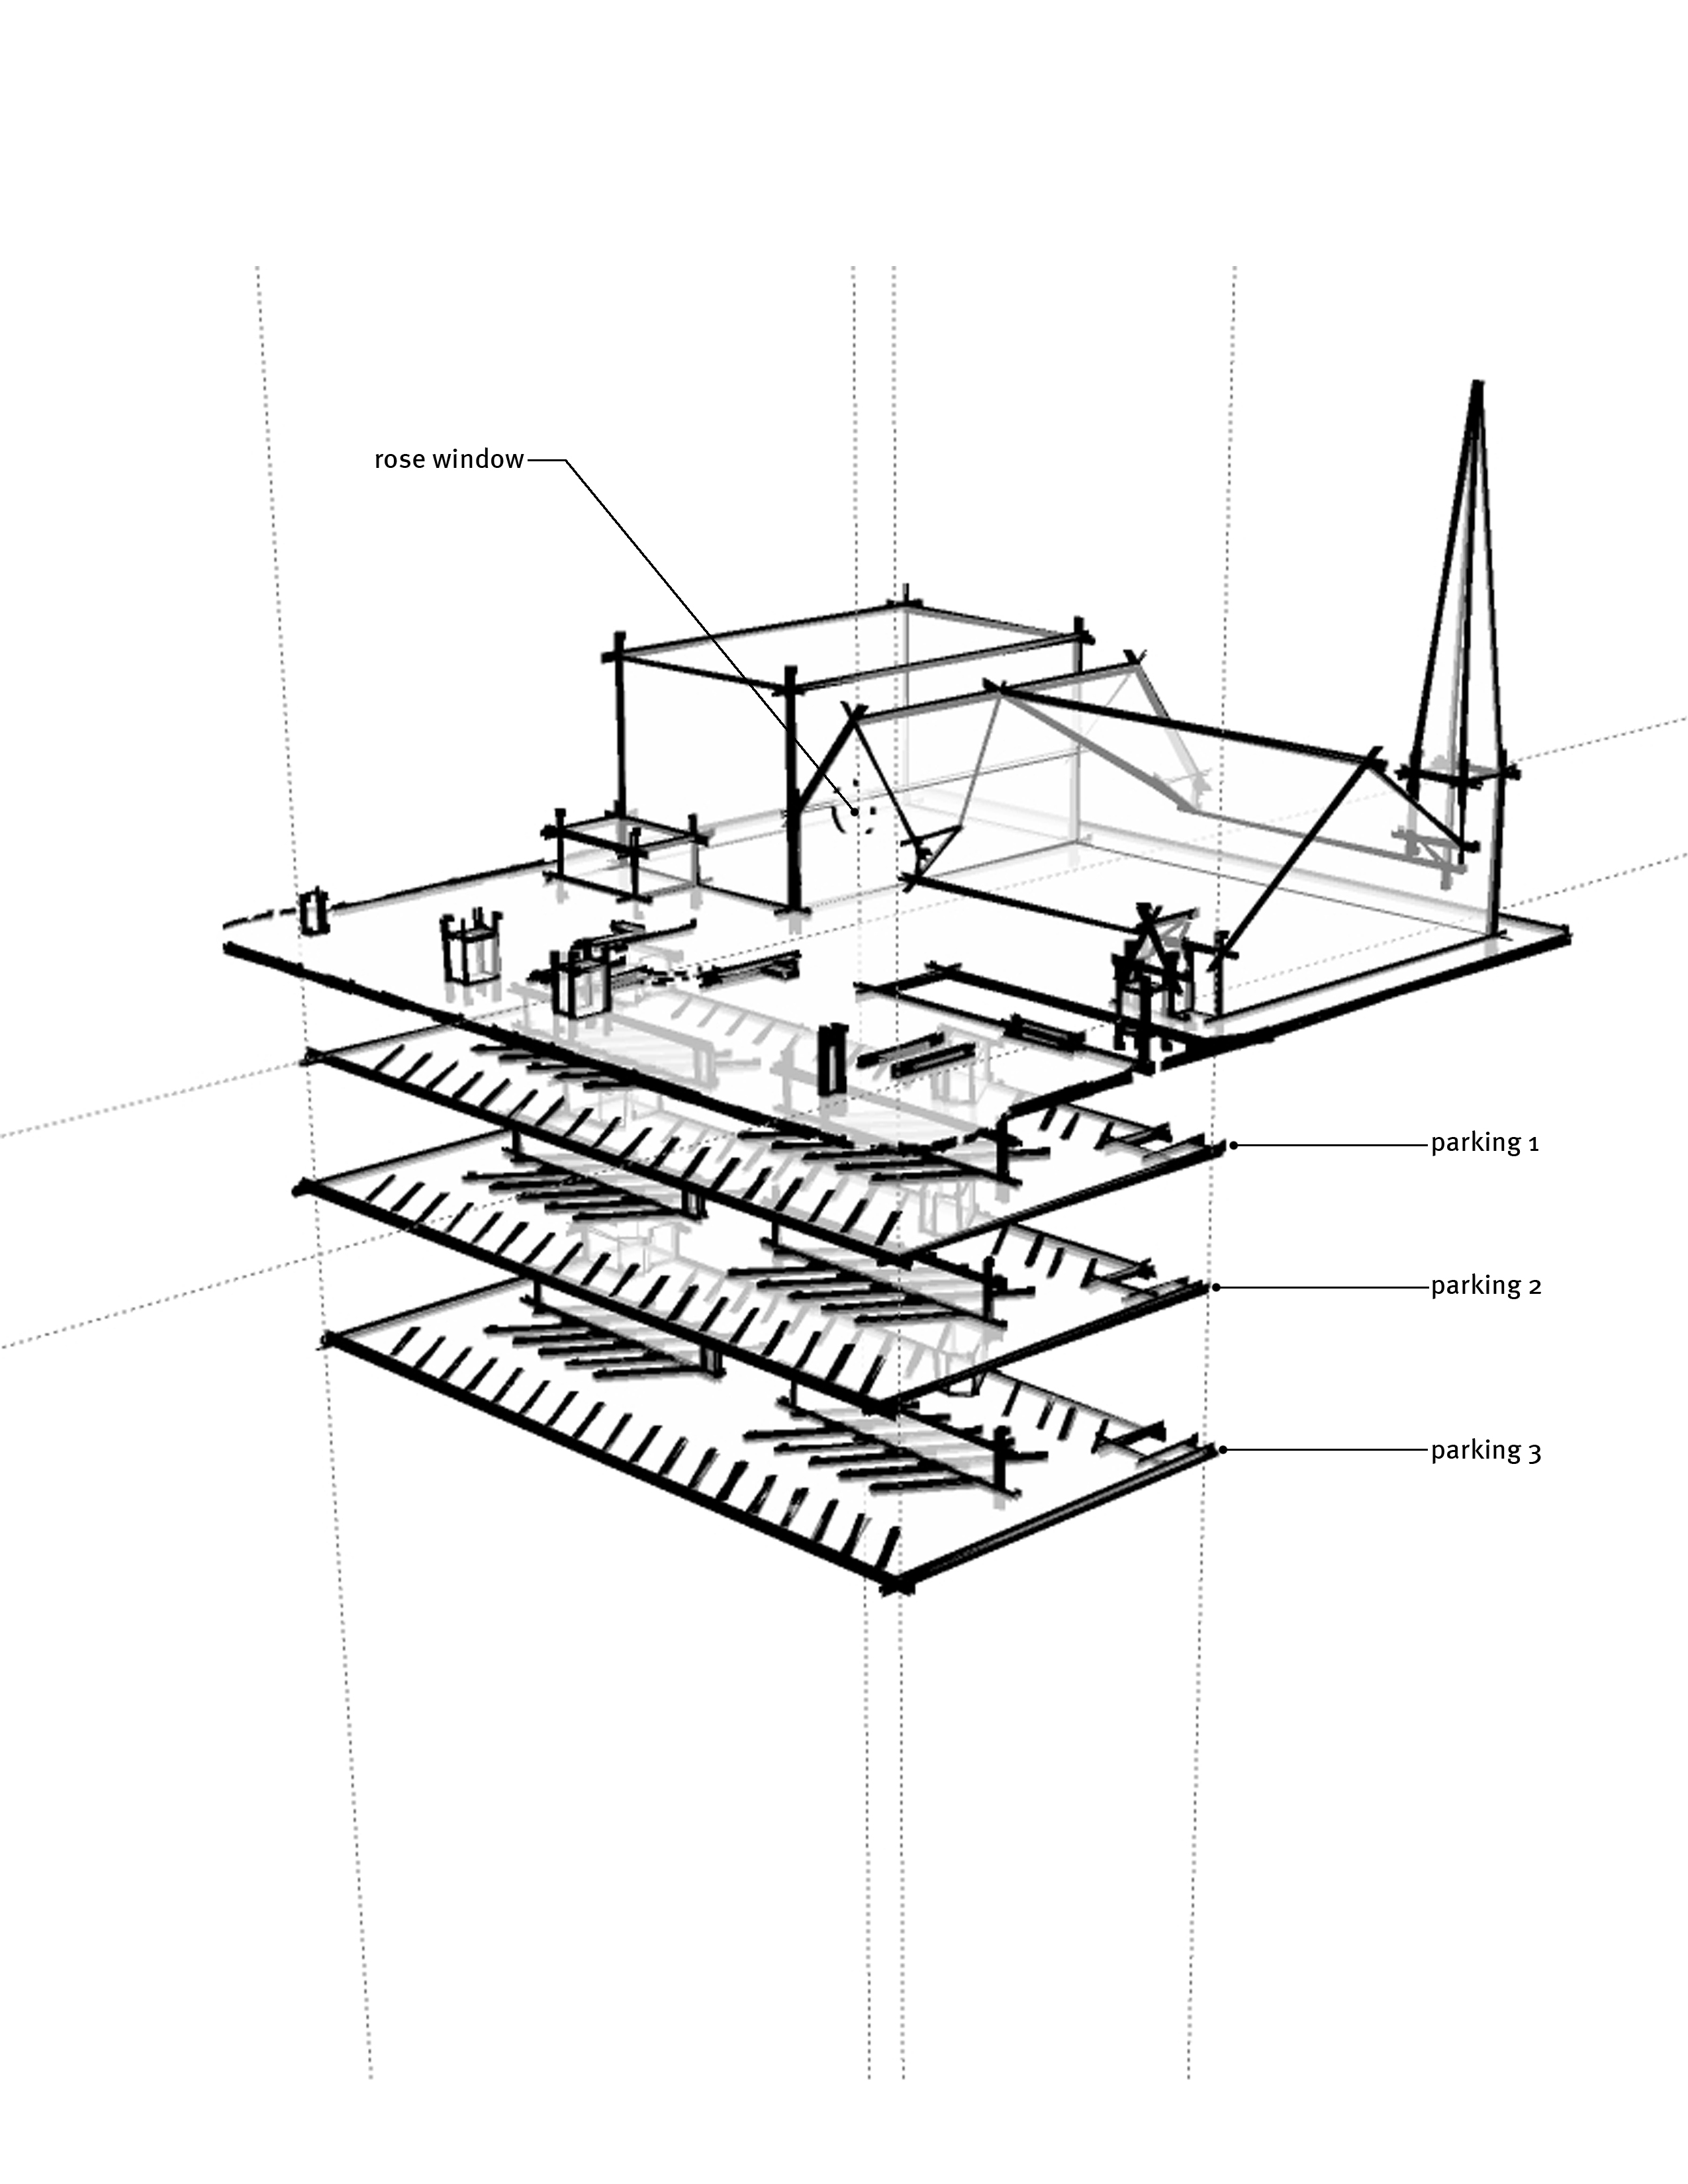 lighting architecture diagram animal cell with chromosomes first presbyterian church | hennebery eddy firm